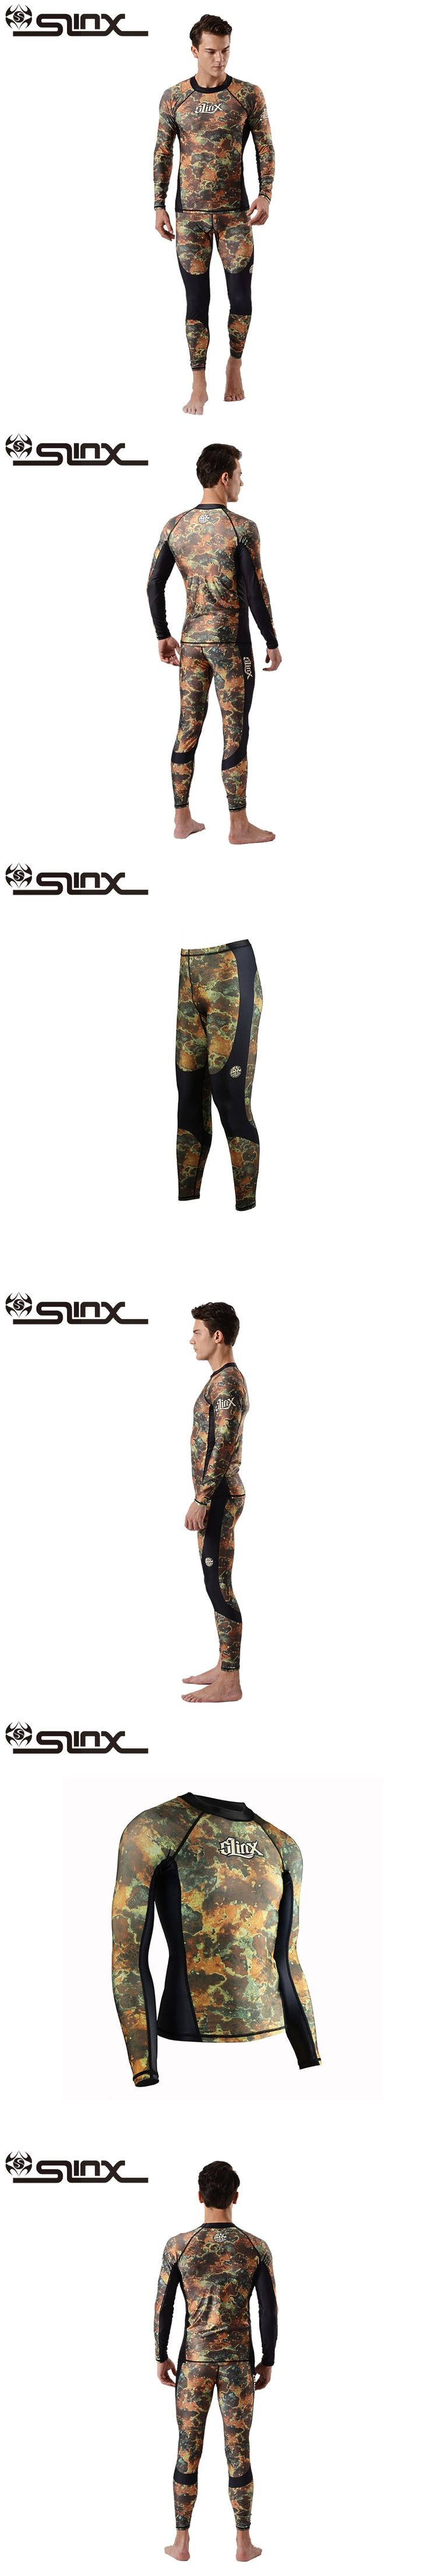 SLINX 0.5mm Lycra Men 2-Pieces Rashguard Camouflage Wetsuit Diving Skin Long Sleeve Swimming Shirt Camo Swimwear Beachwear